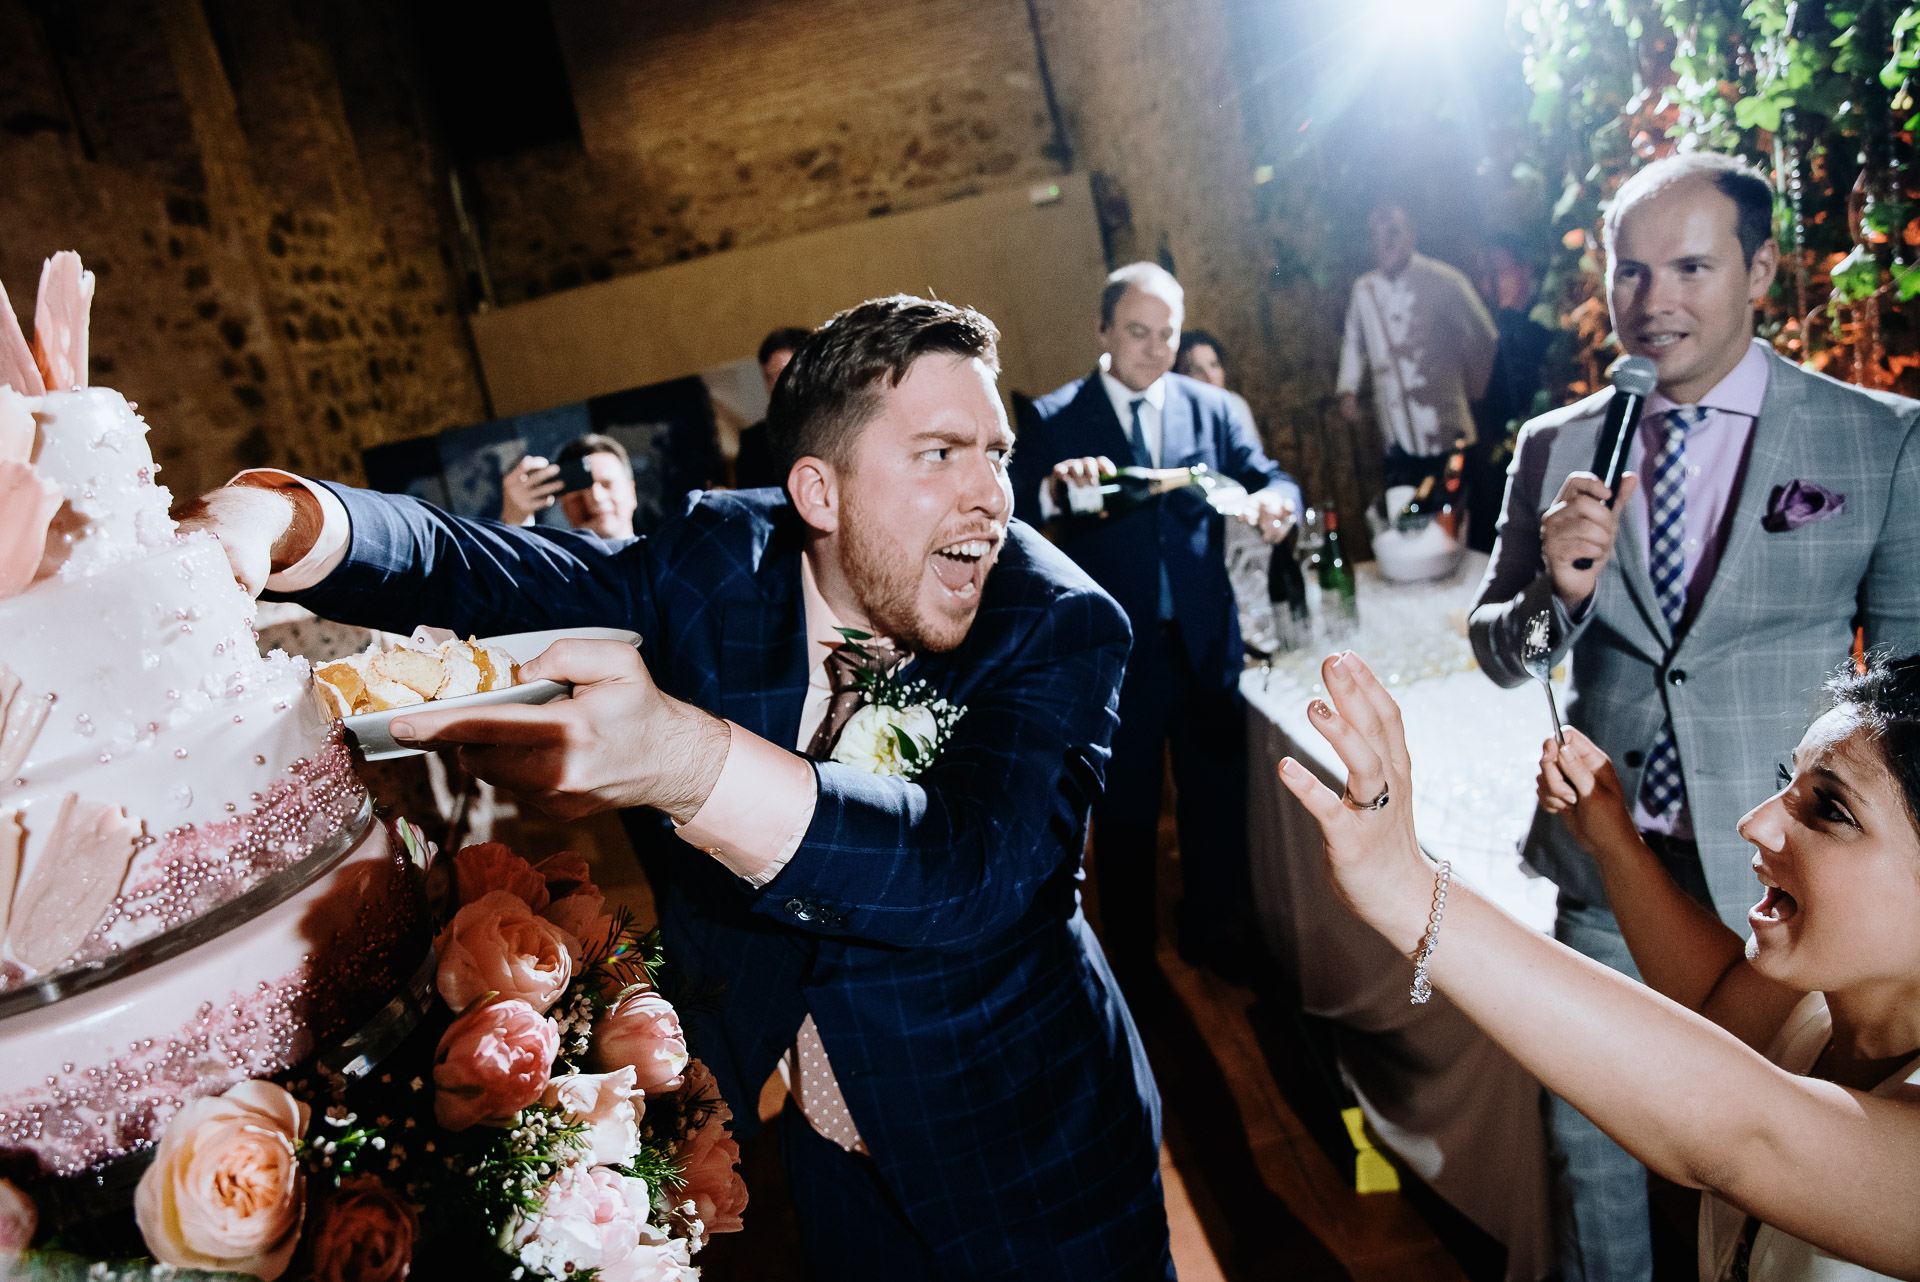 Humorous image of the groom at the wedding reception reaching into the cake bare-handed as he thinks about smashing it.